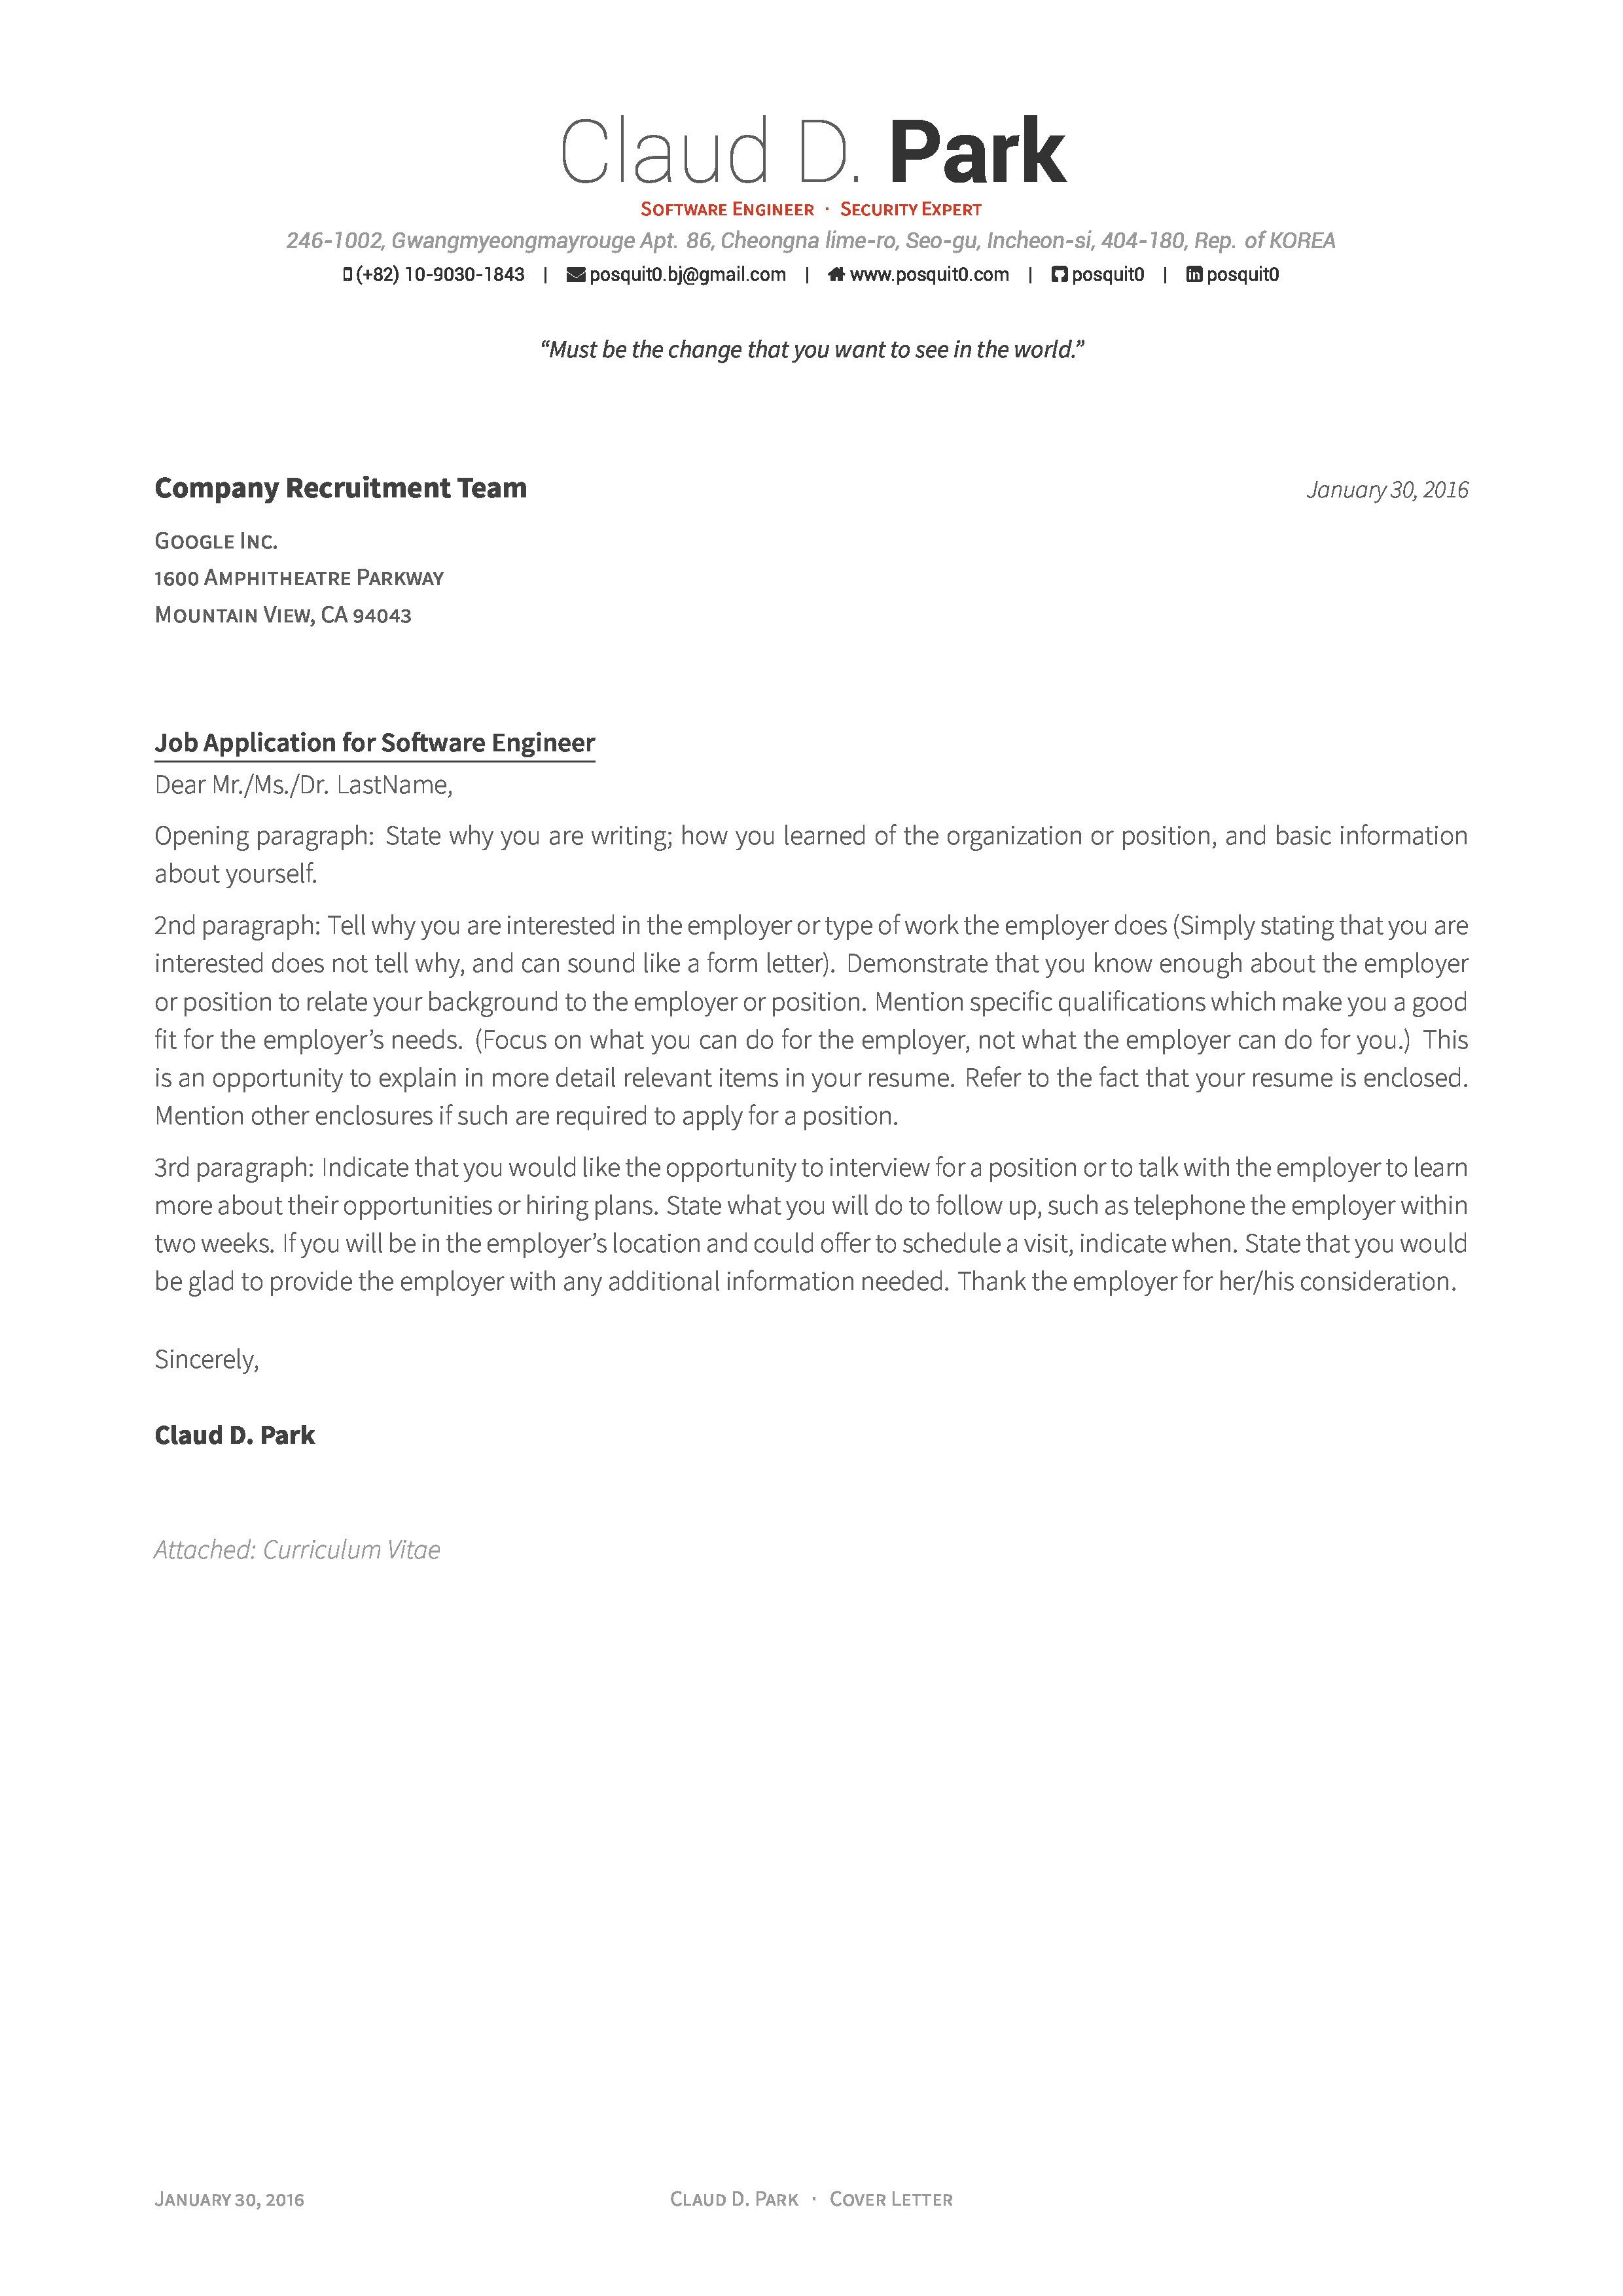 Cover letter template overleaf resume examples